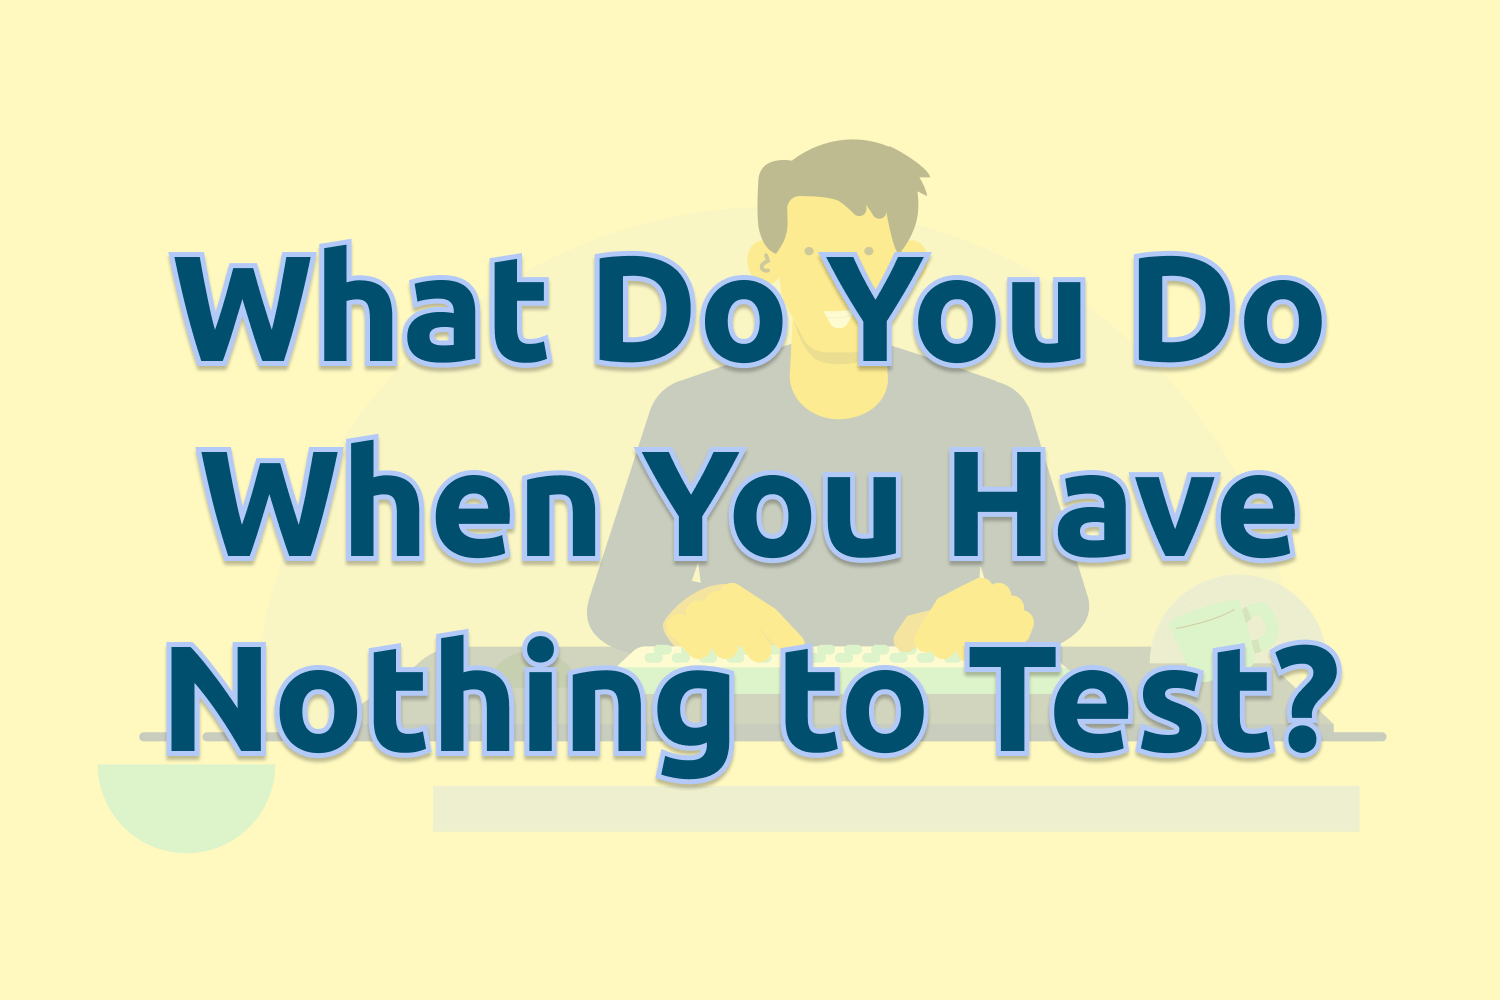 What Do You Do When You Have Nothing to Test?